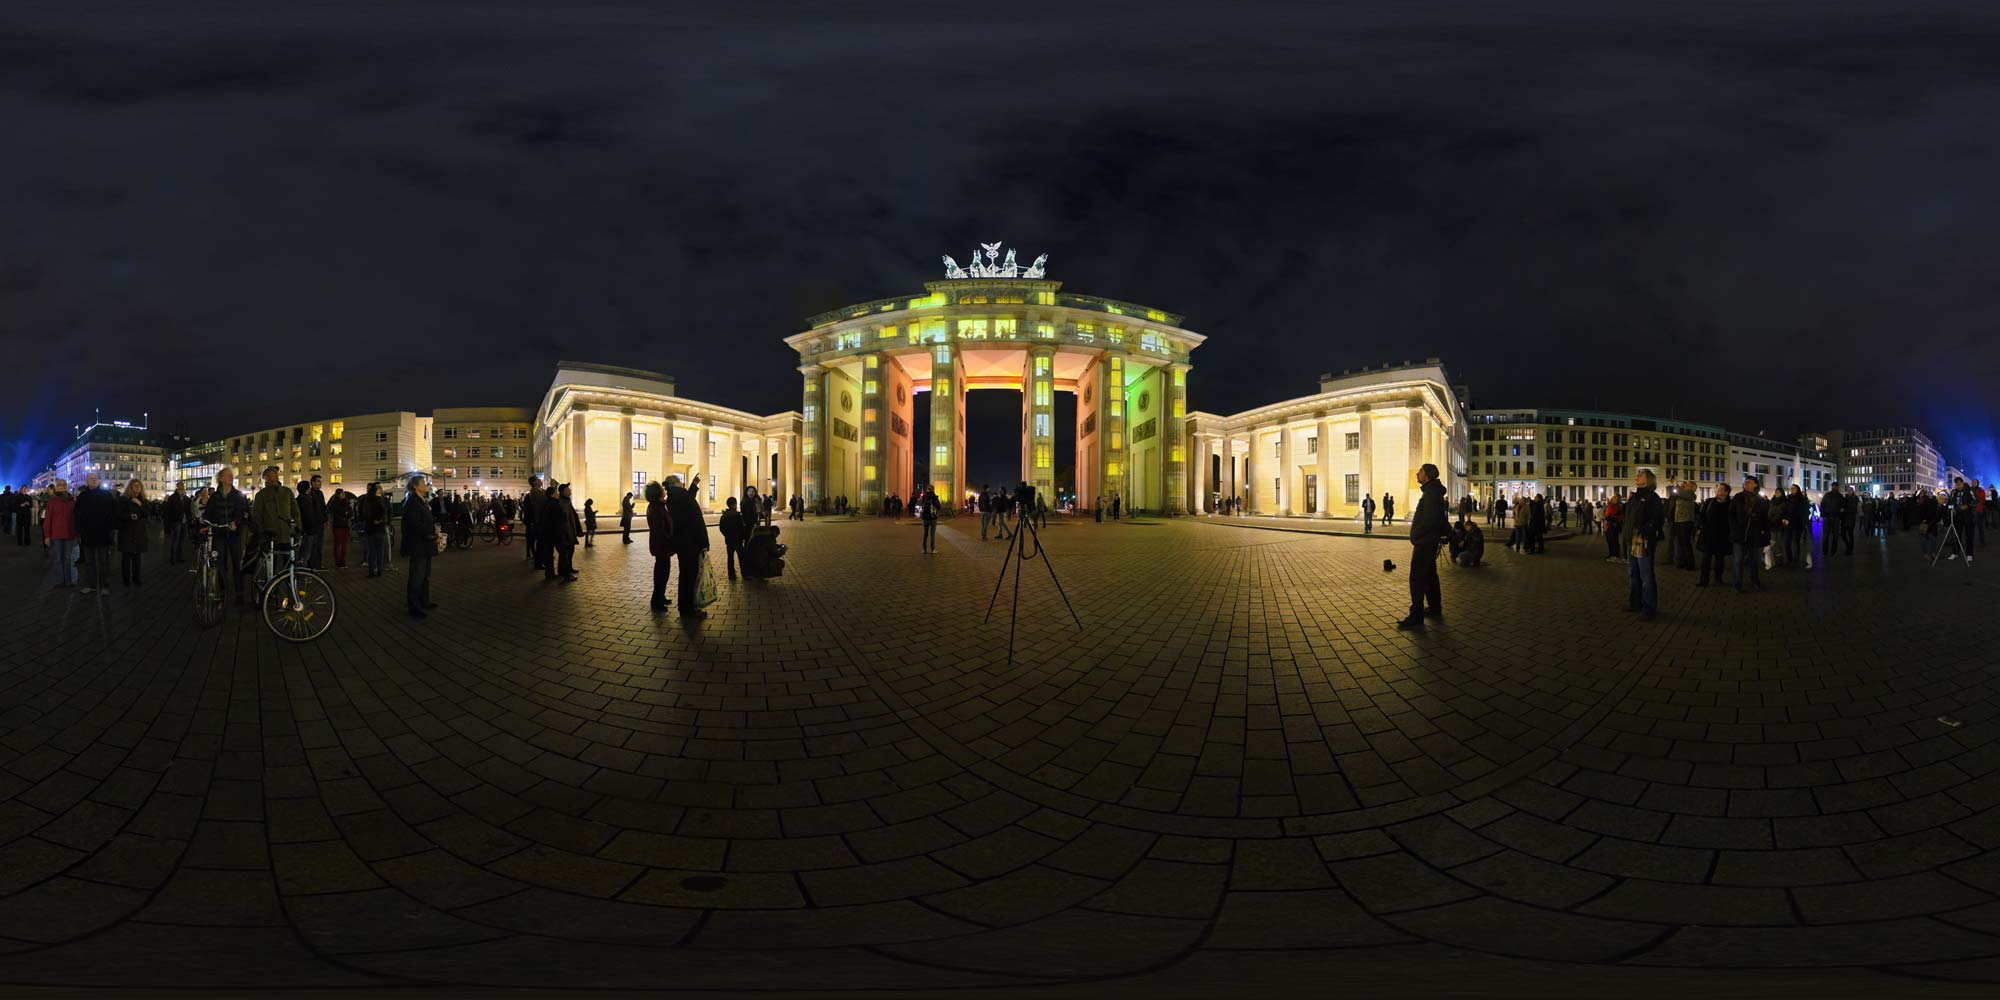 Panorama Berlin Festival of Lights - FOL 2012 Brandenburger Tor